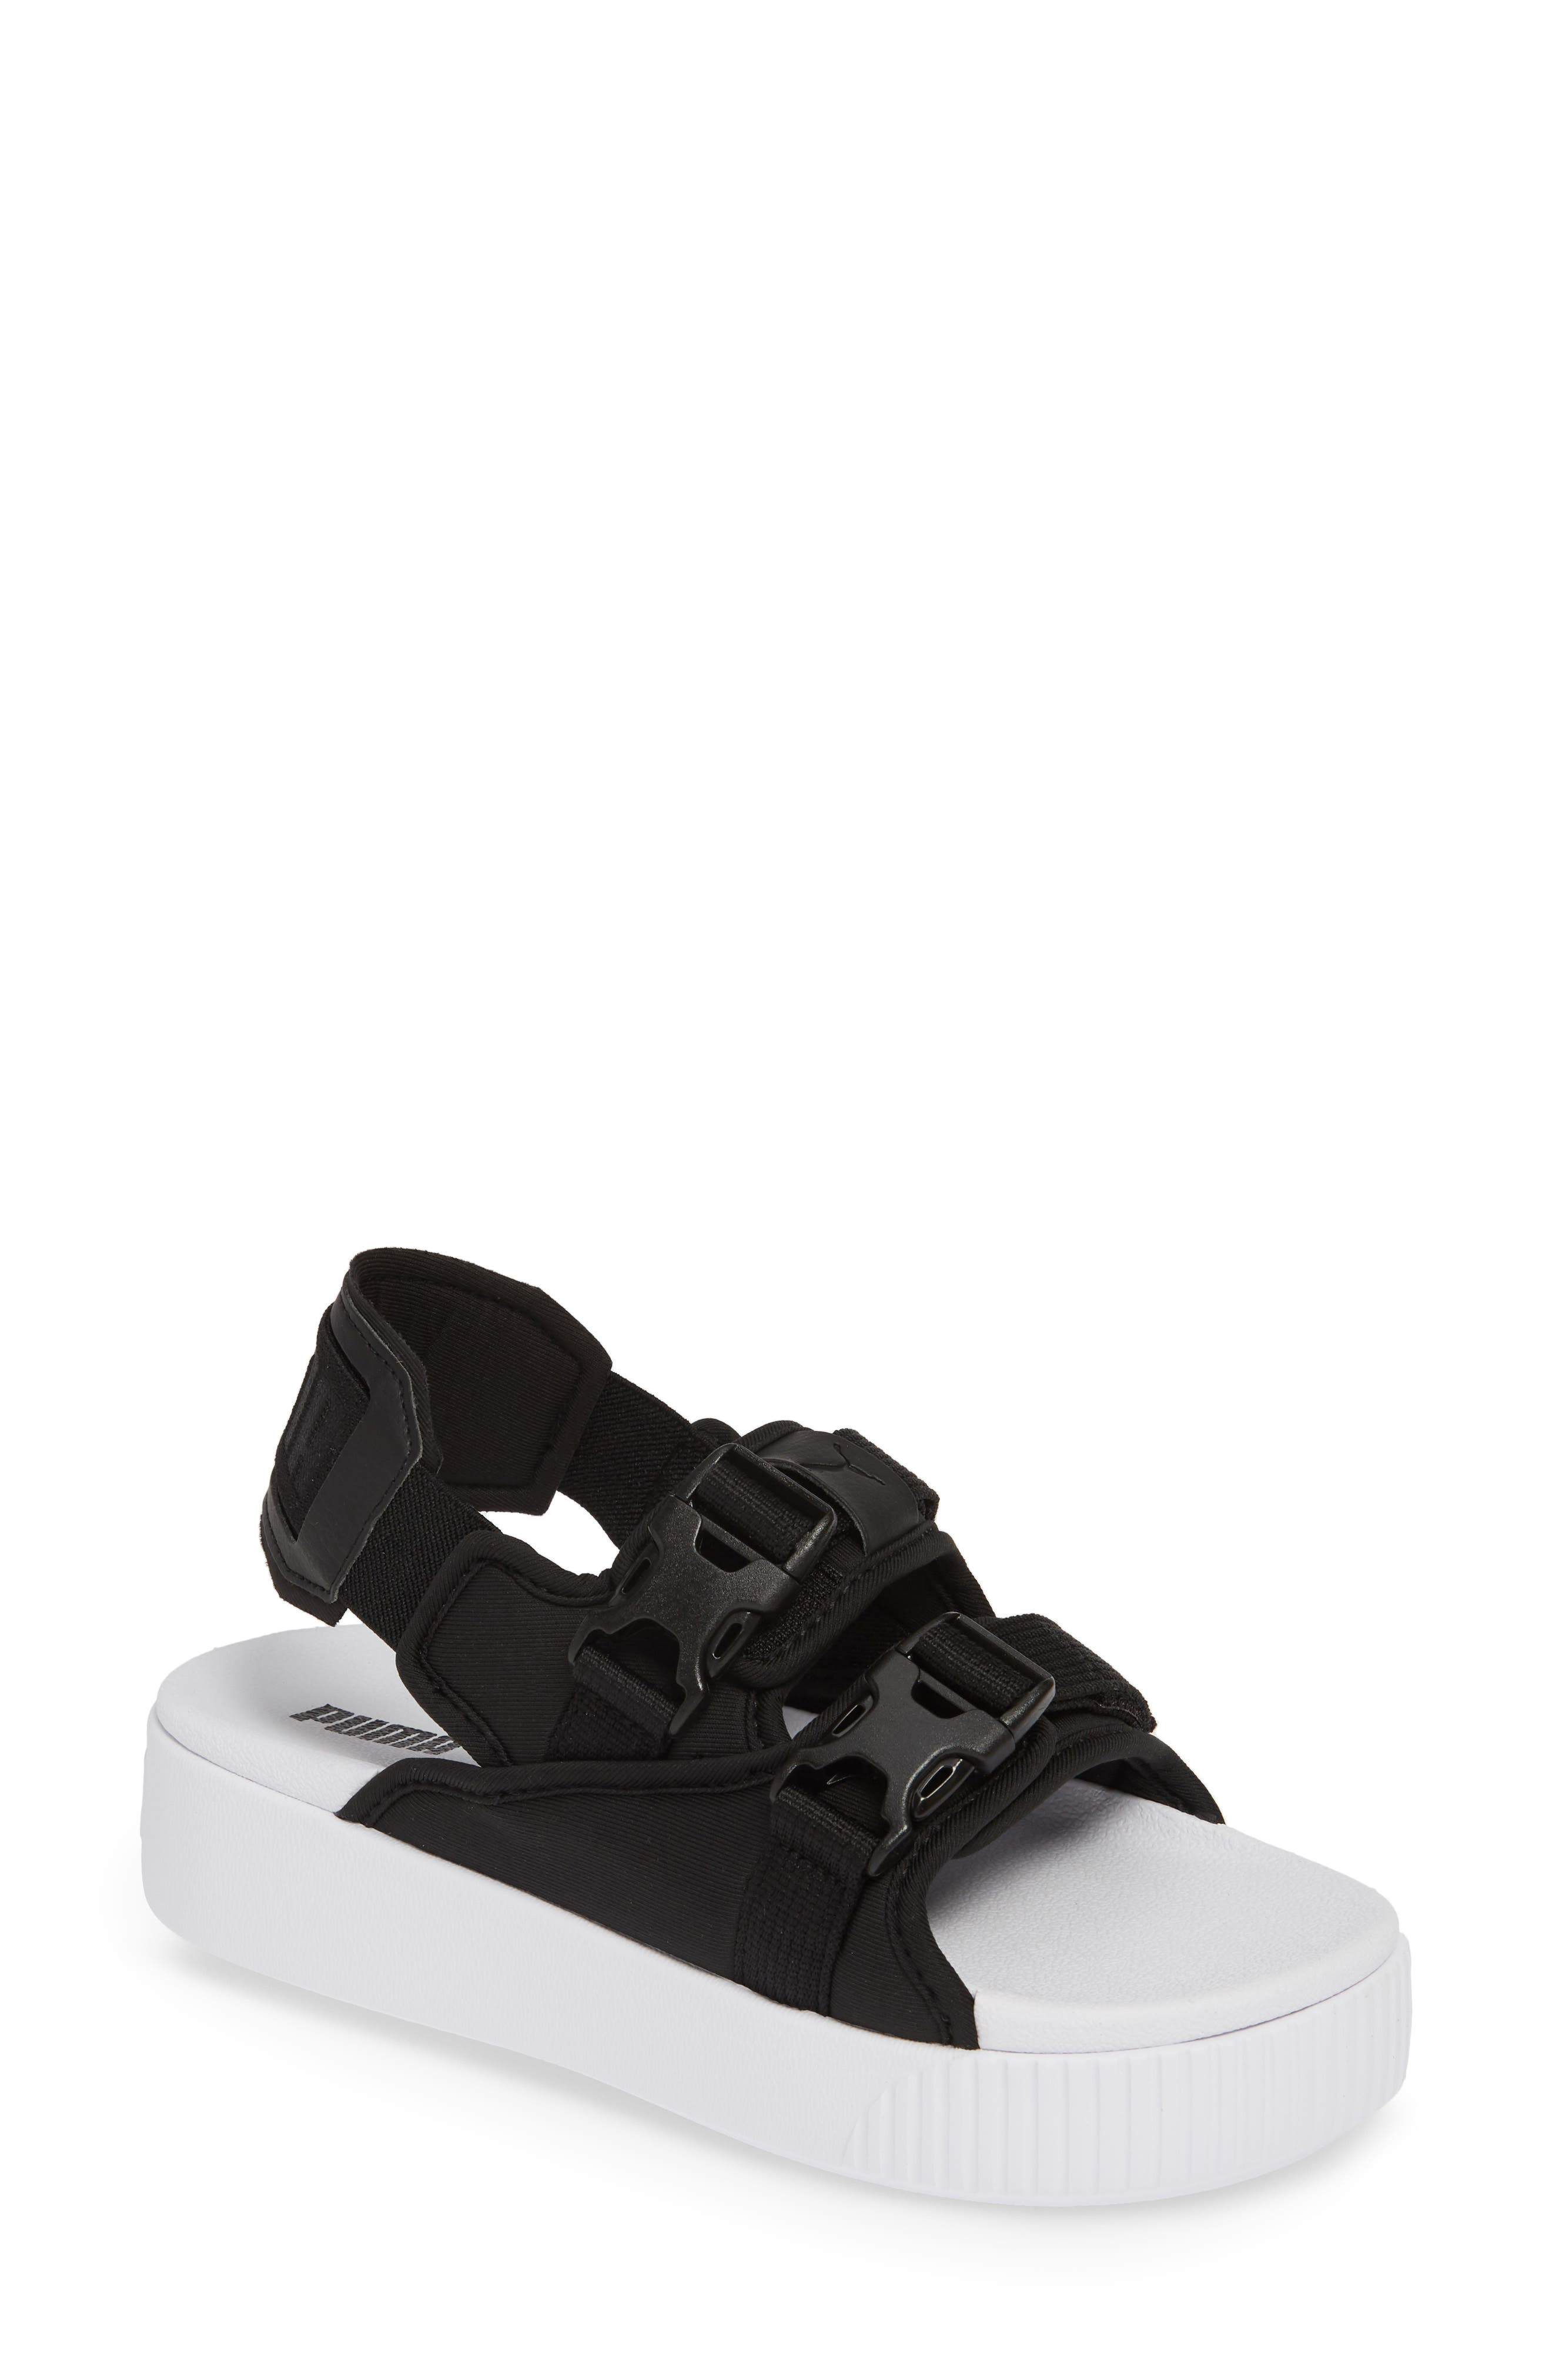 PUMA, Platform Slide YLM 19 Sandal, Main thumbnail 1, color, BLACK/ WHITE